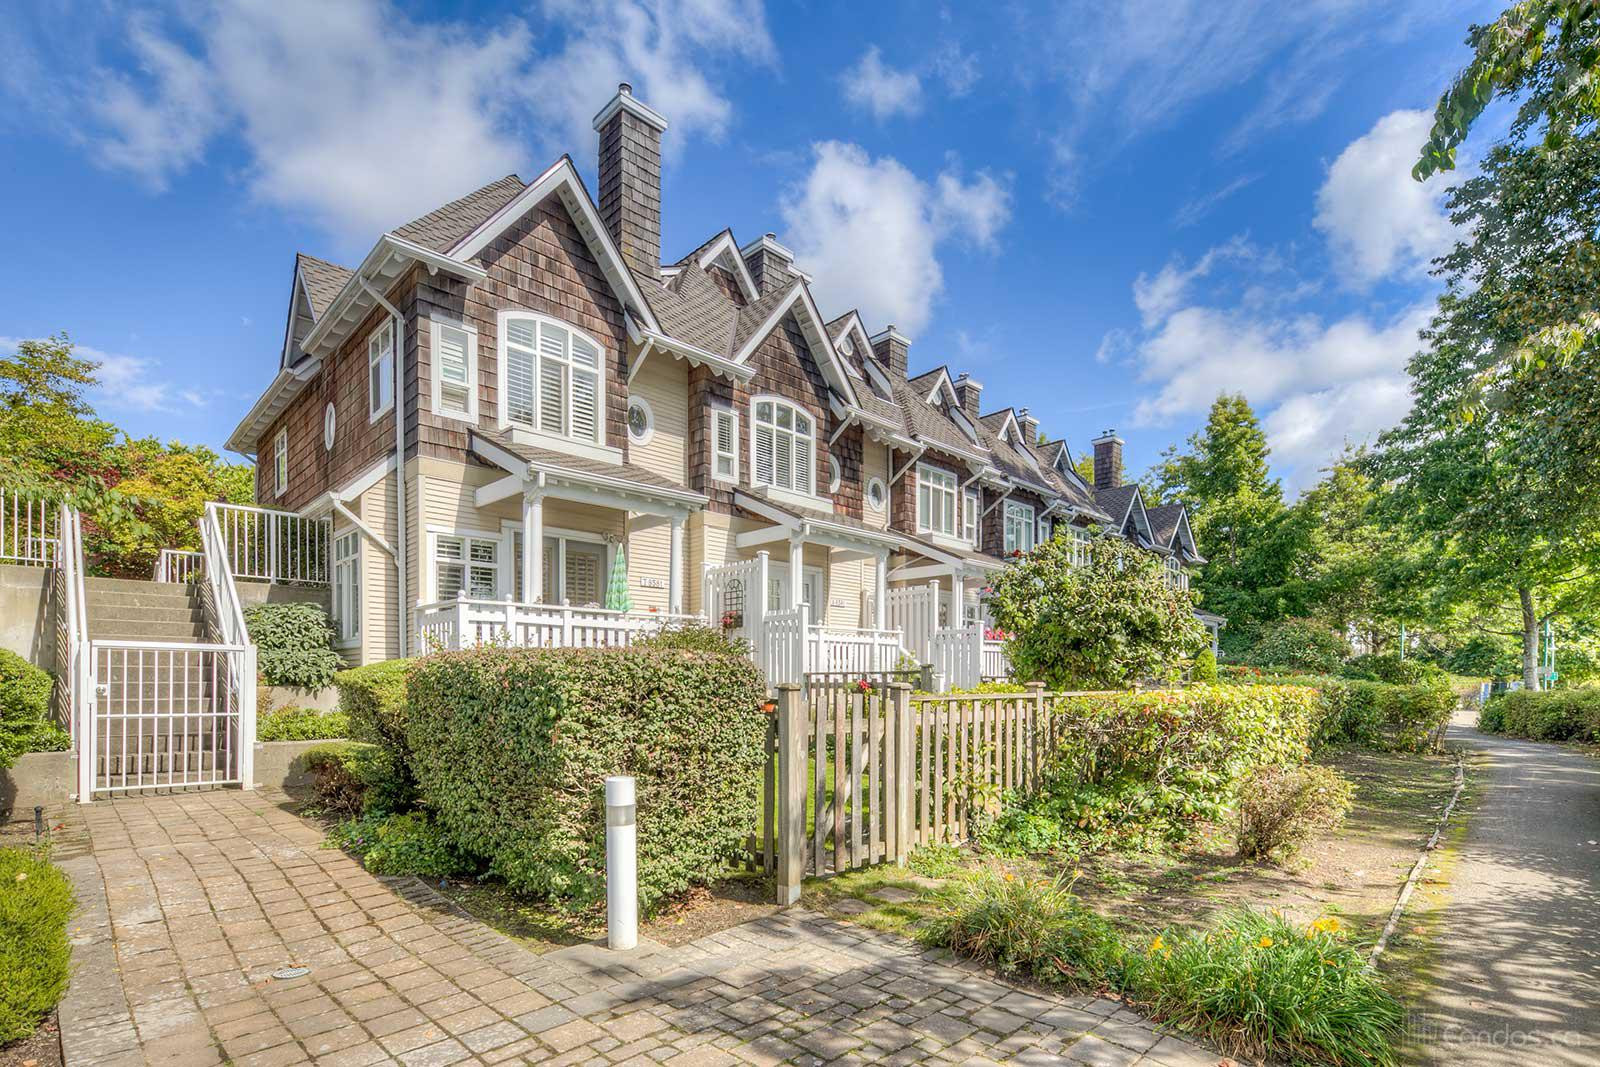 Lighthouse Terrace at 8581 Jellicoe St, Vancouver 0